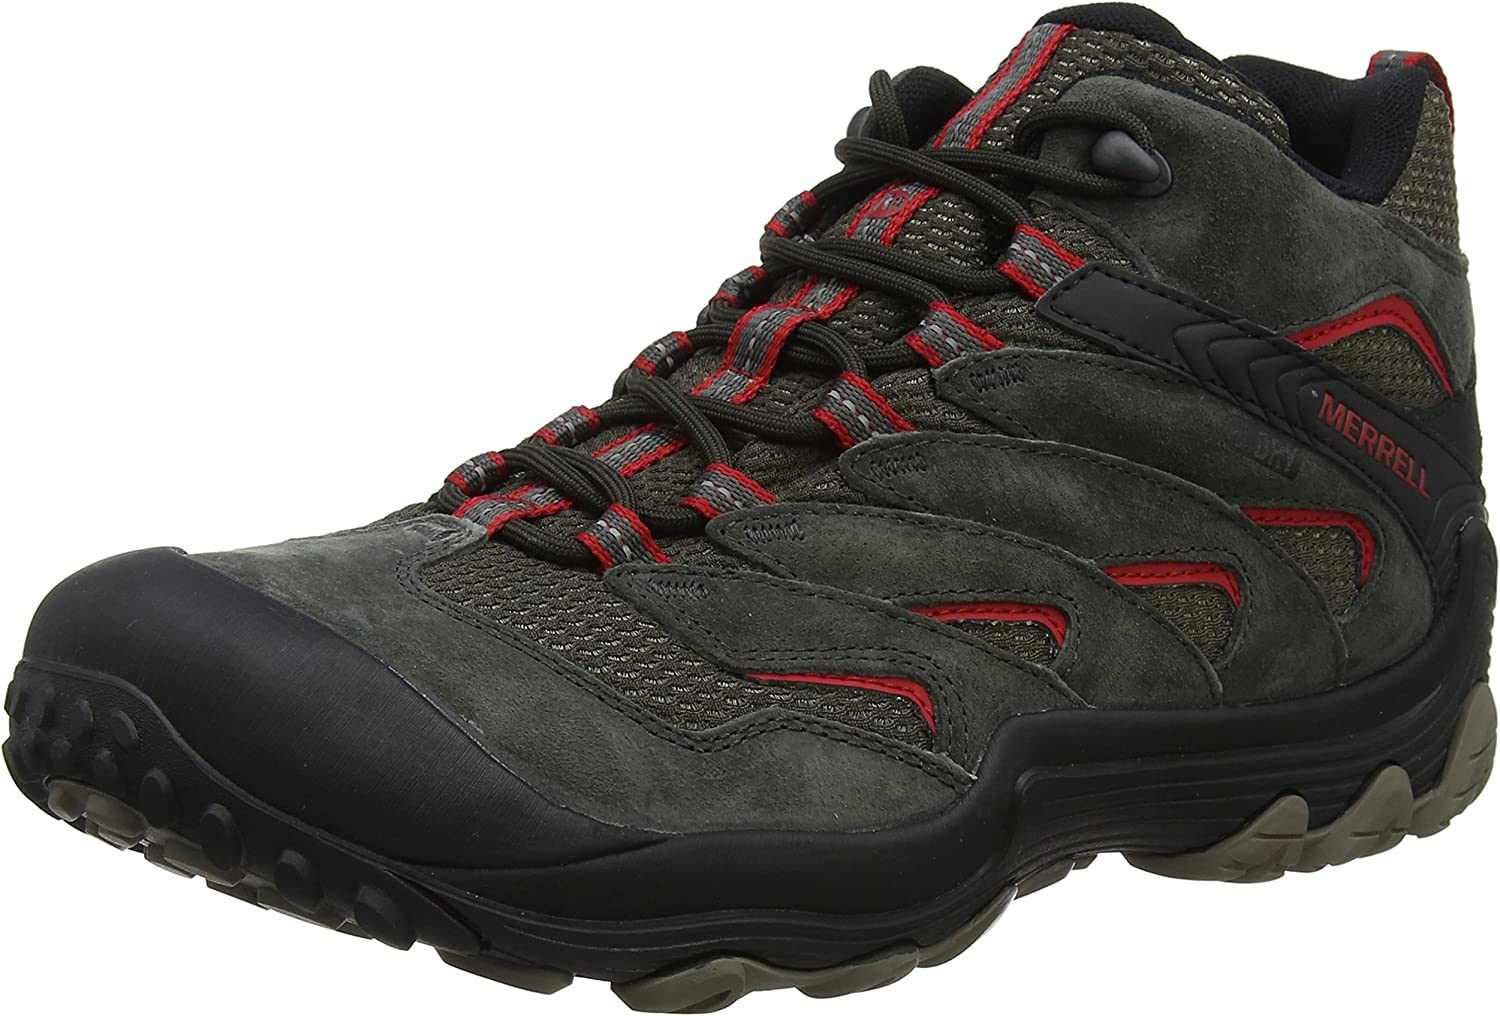 Merrell Men's Cham 7 Limit Mid Waterproof High Rise Hiking Boots